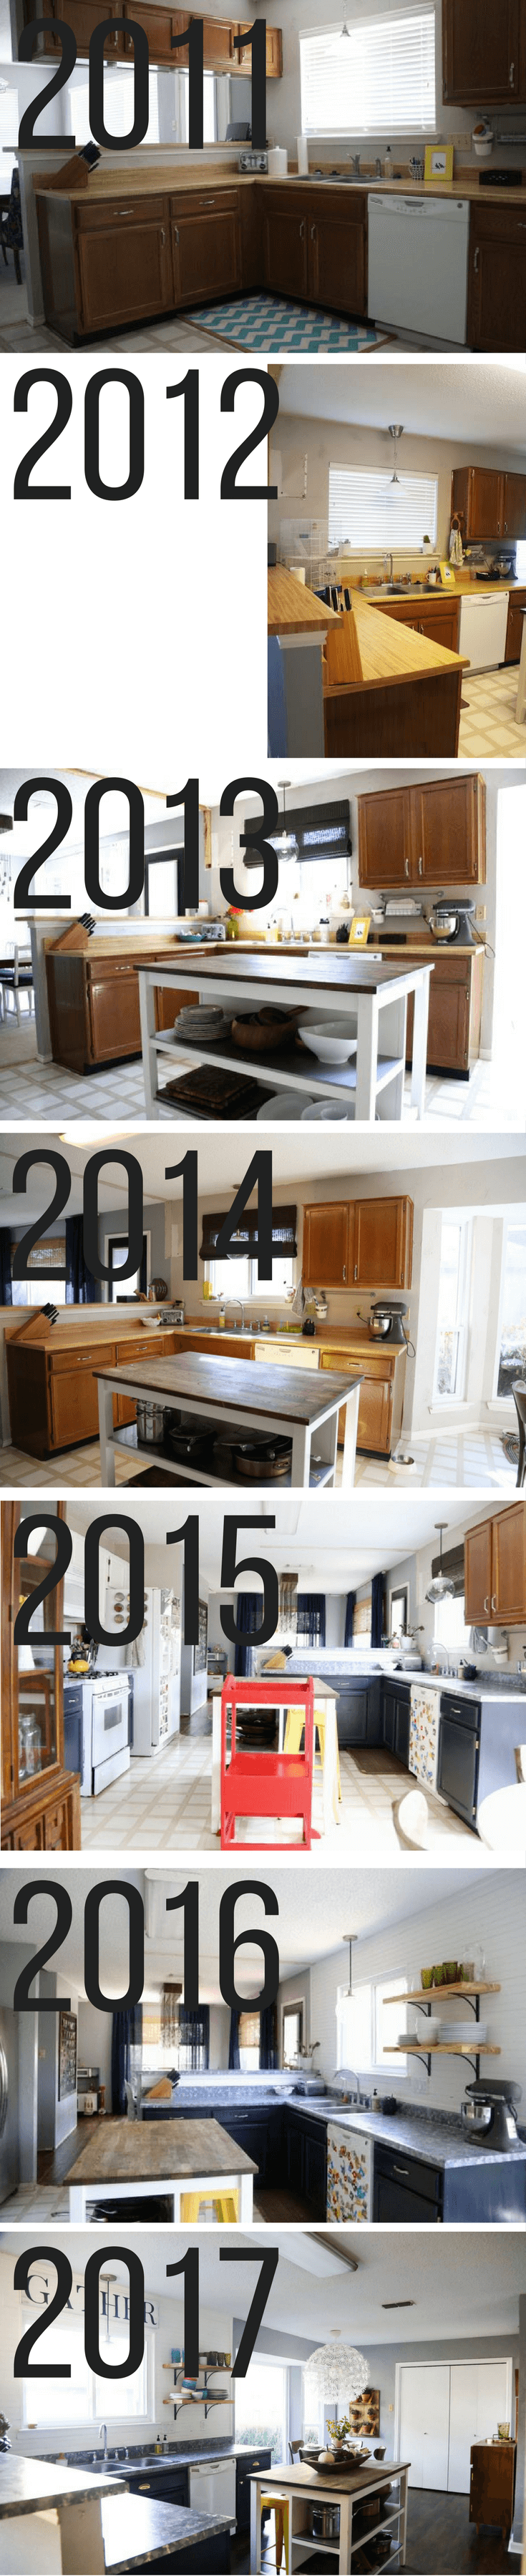 A look at the evolution of a kitchen throughout the years. Ideas for how to decorate a kitchen